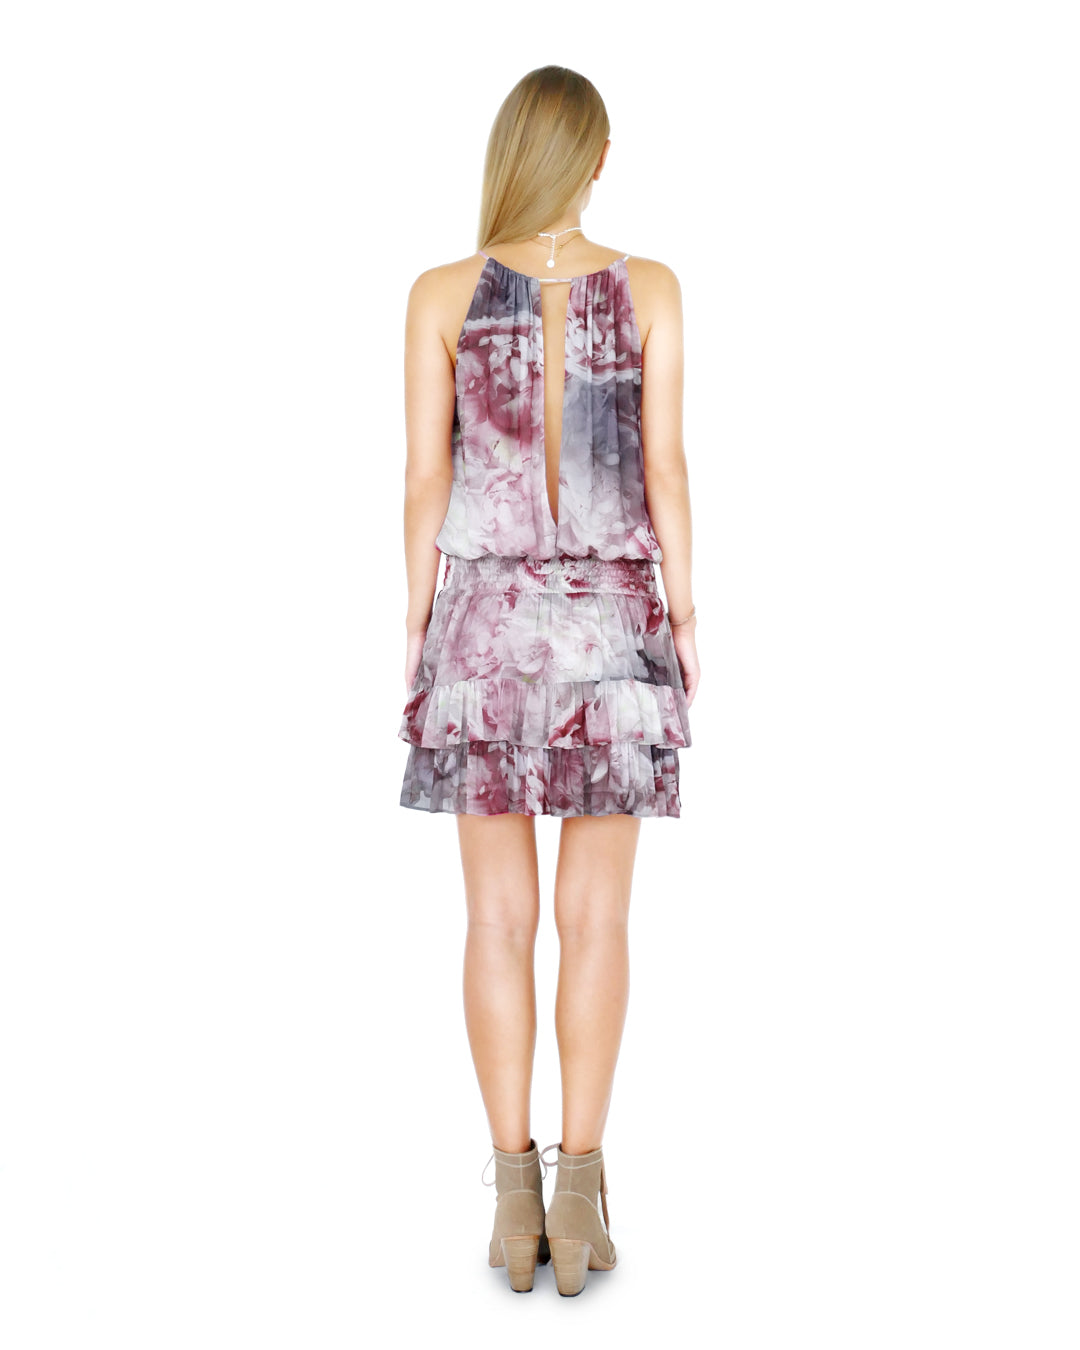 HIGH TIDE PEONY PRINT DRESS